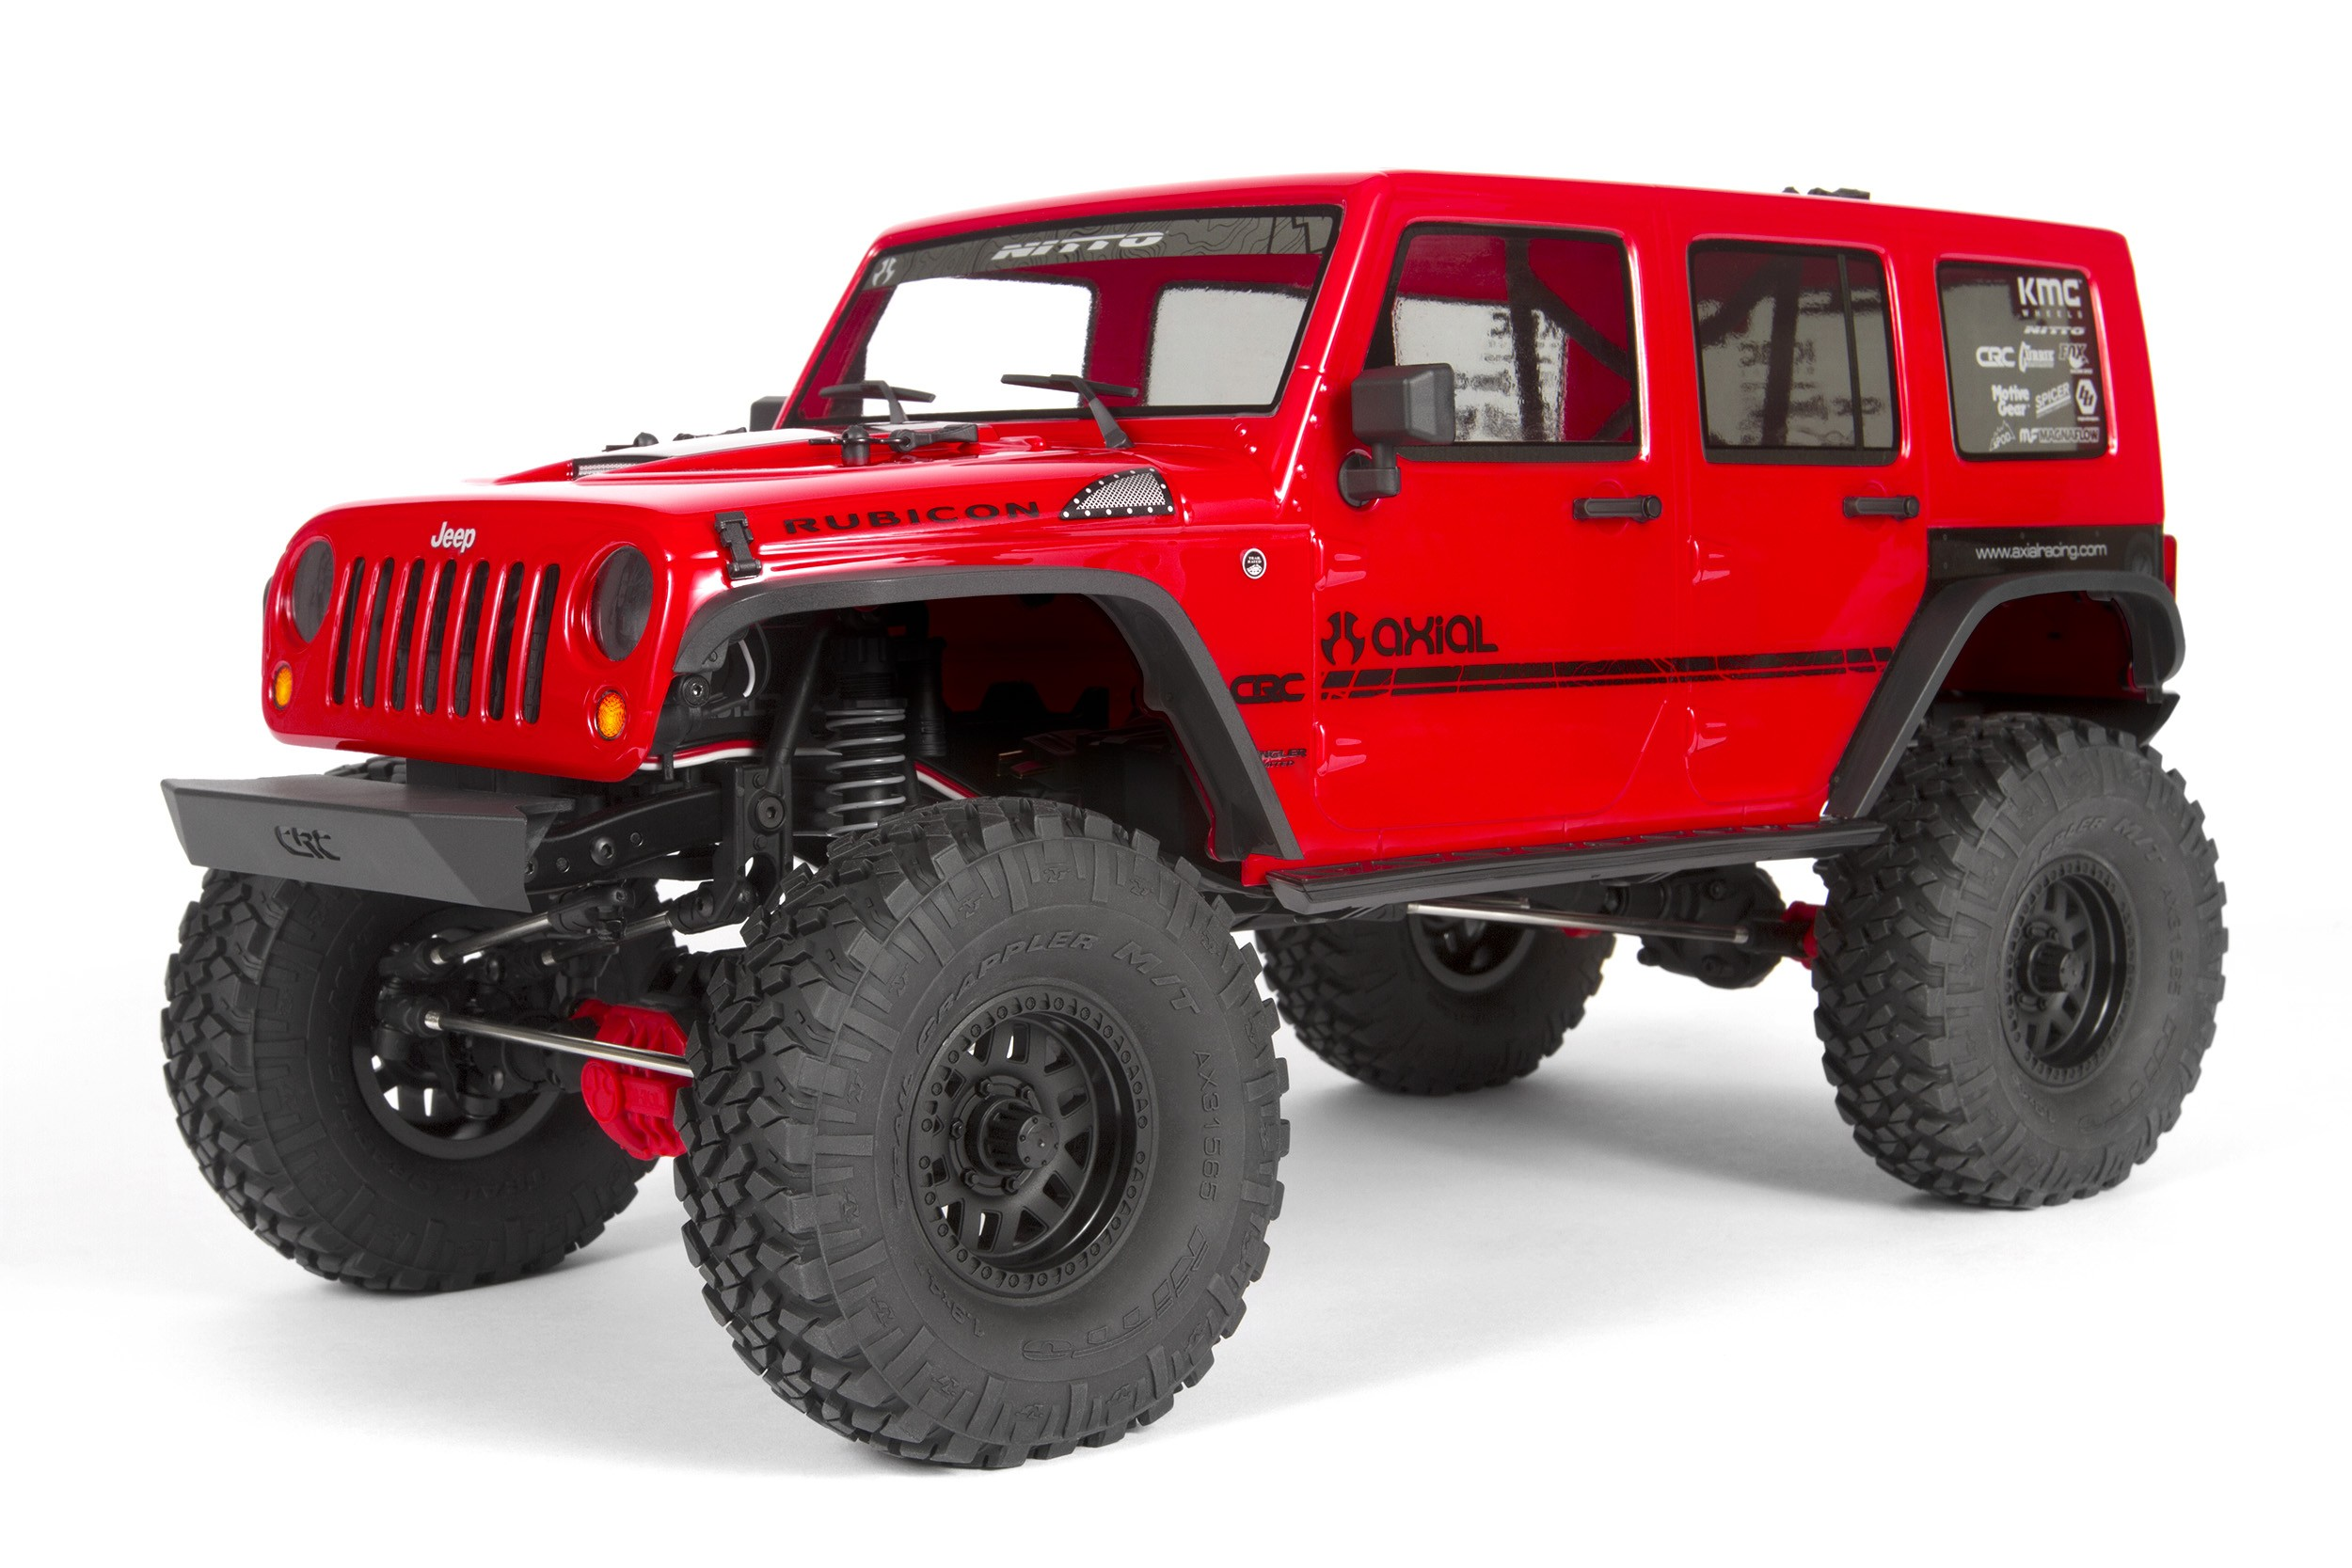 of merrick new rubicon rock jk chrysler featured wrangler hard dodge wantagh jeep at htm unlimited vehicles